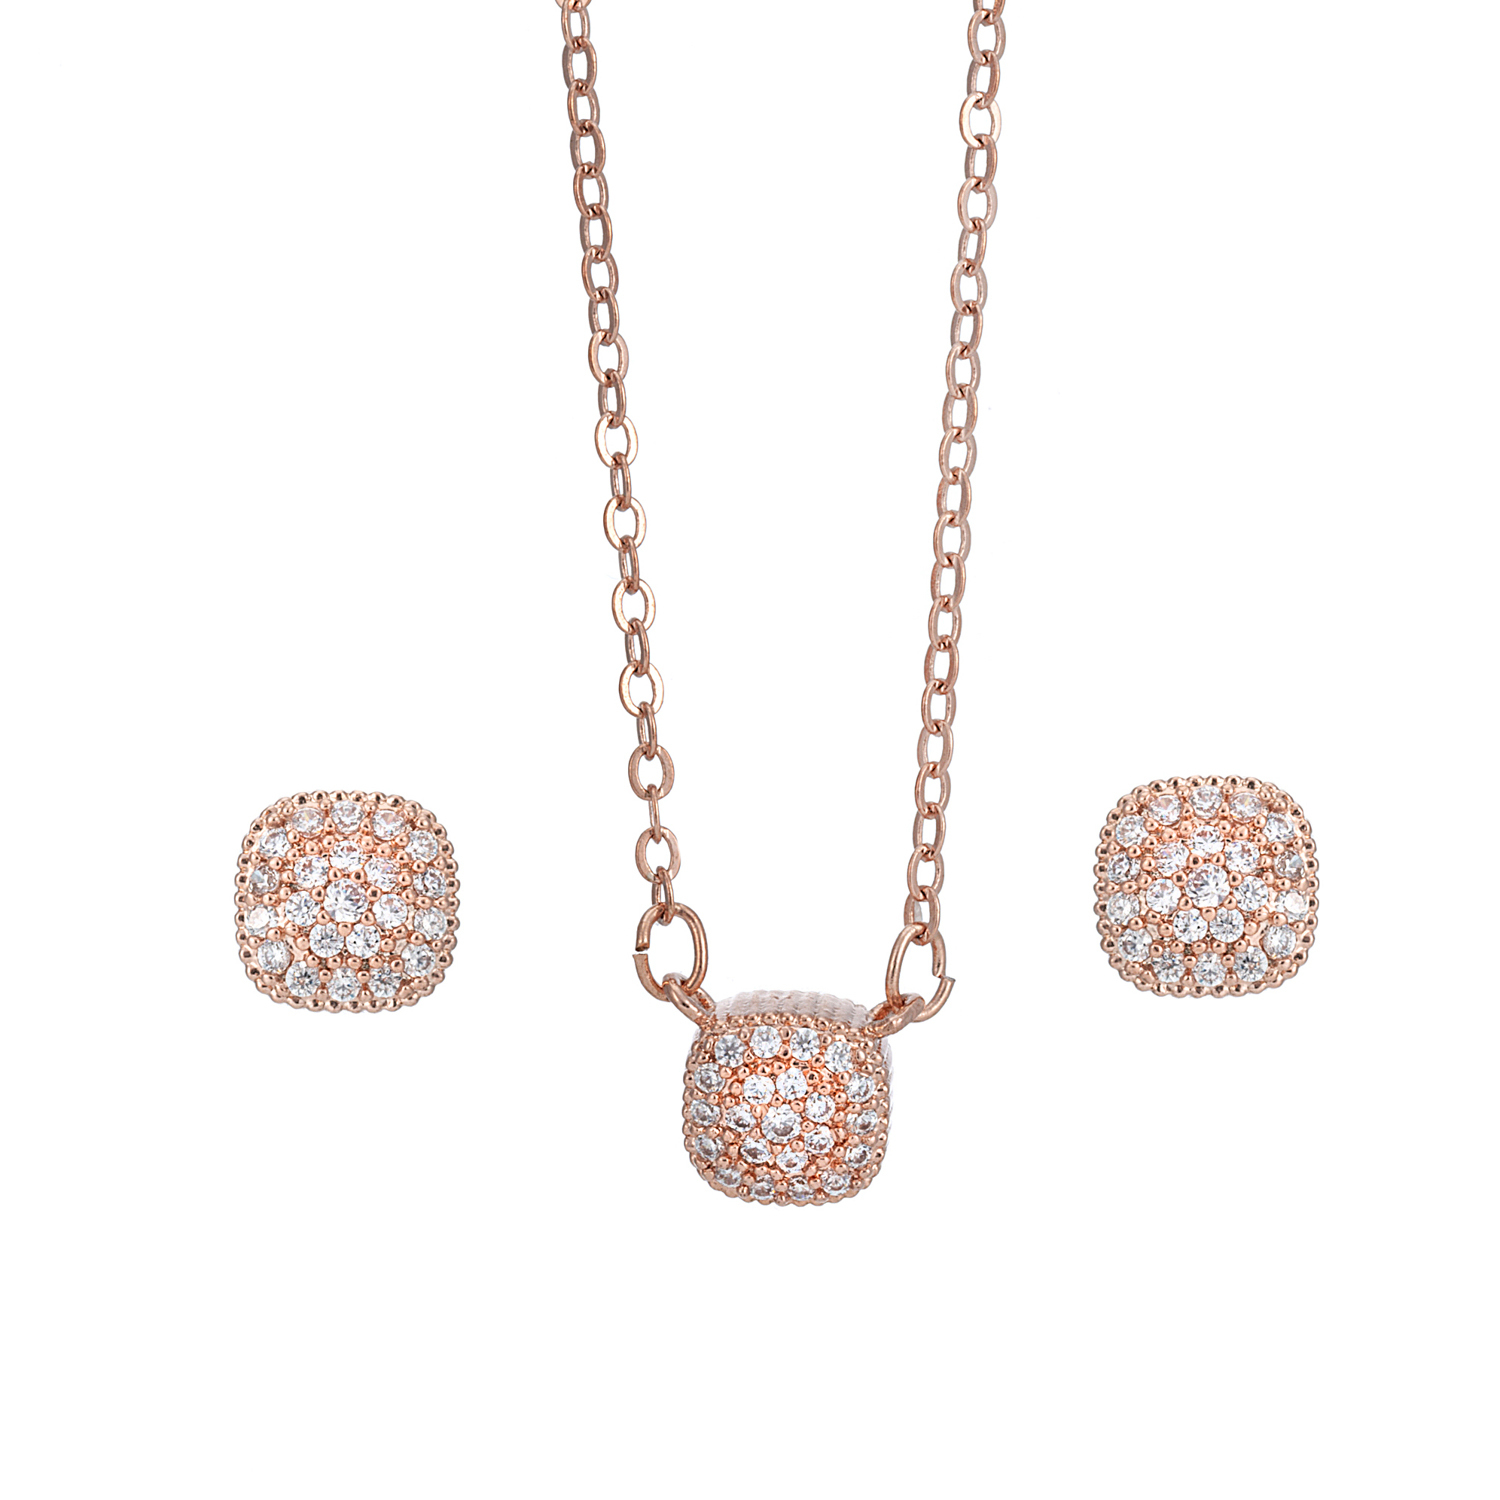 ROSE GOLD Dainty Cube Gift Set